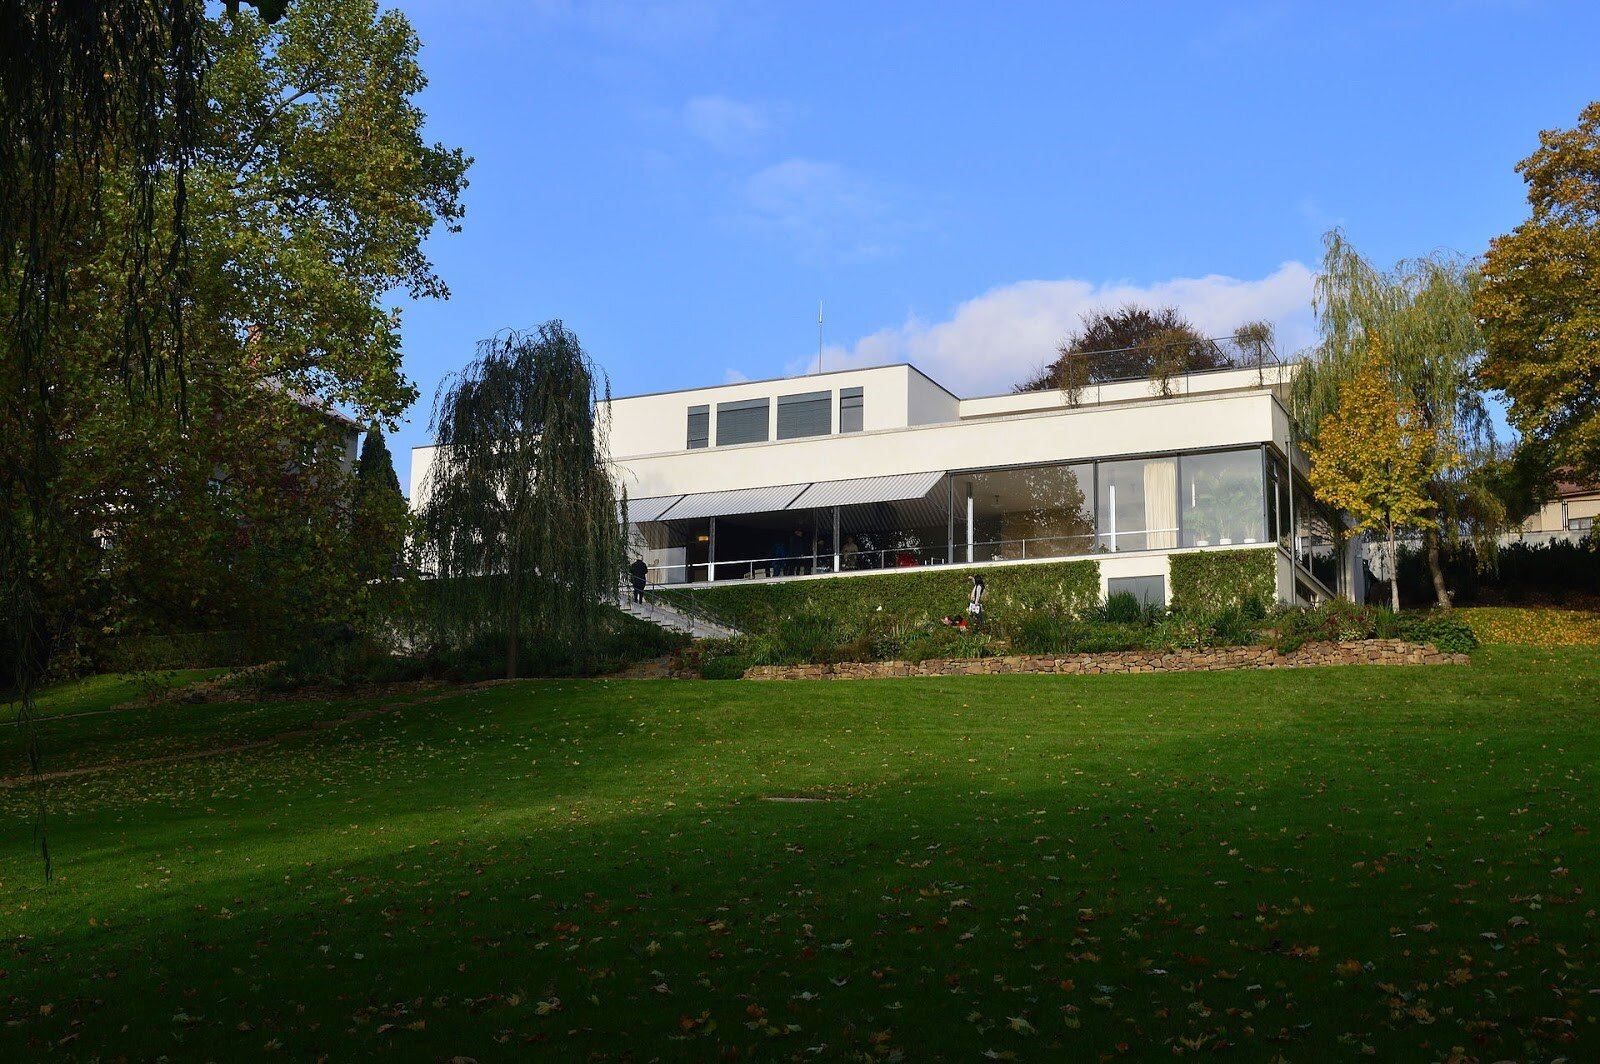 Van der Rohe's Villa Tugendhat in the Czech Republic | Photo courtesy of Petr1987 and Wikimedia Commons